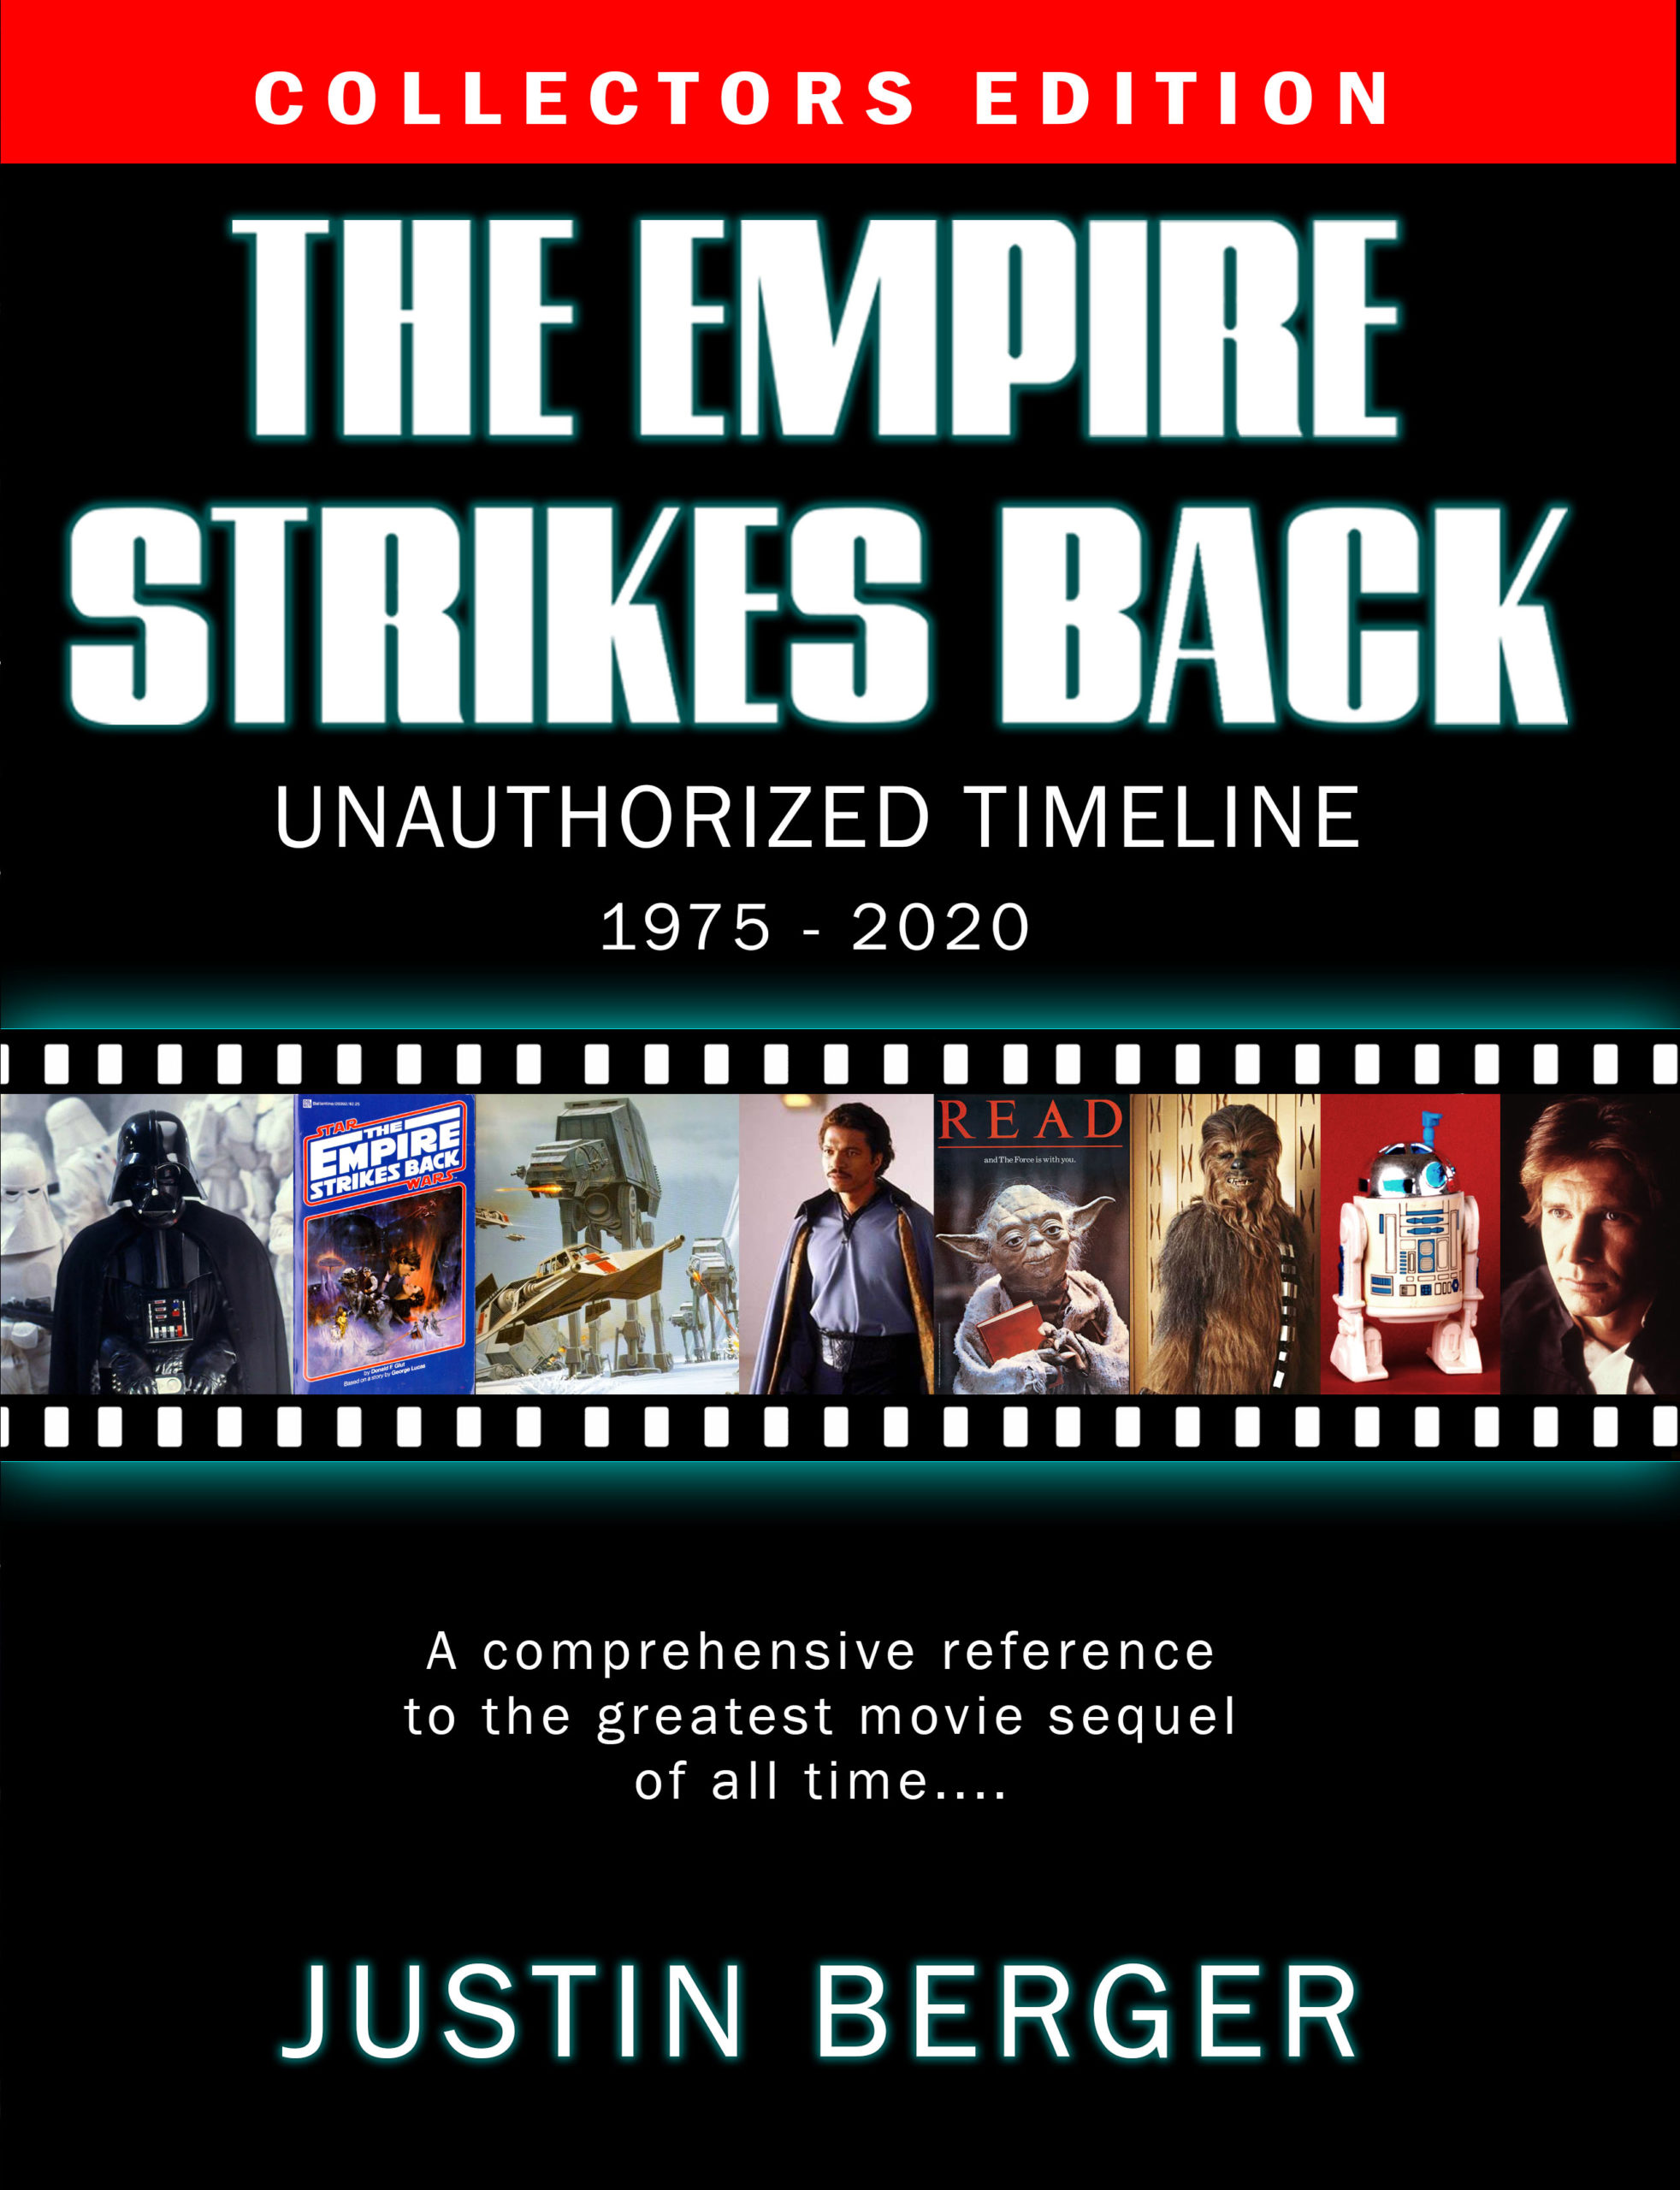 ESB TIMELINE BOOK COVER - LIMITED EDITION - COVER ONLY